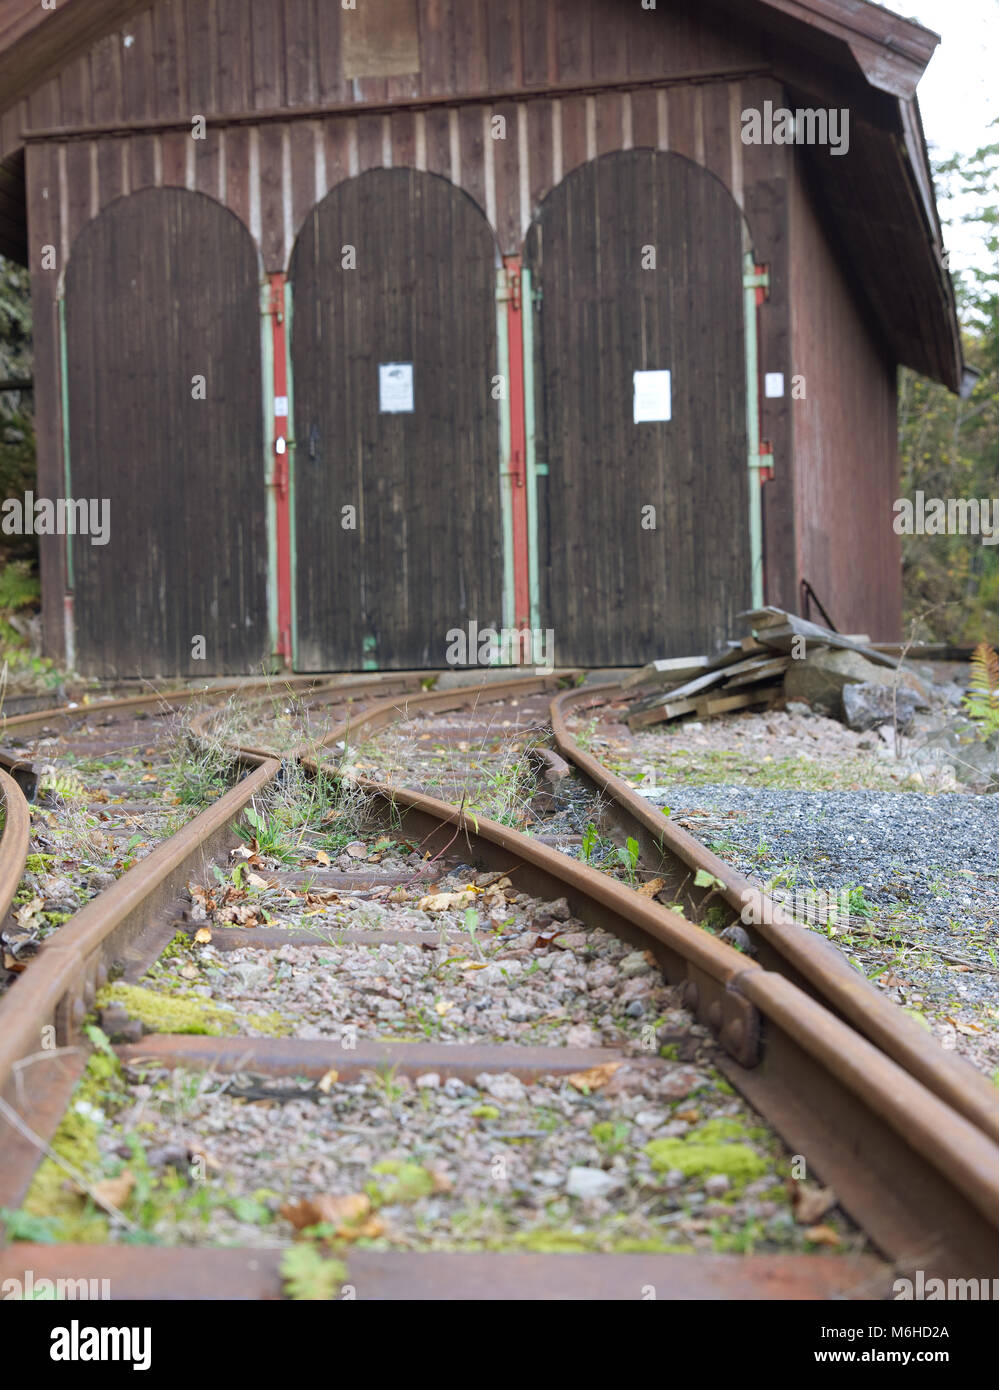 Rail tracks leading up to a train garage at Konnerud Mining Museum in Norway - Stock Image